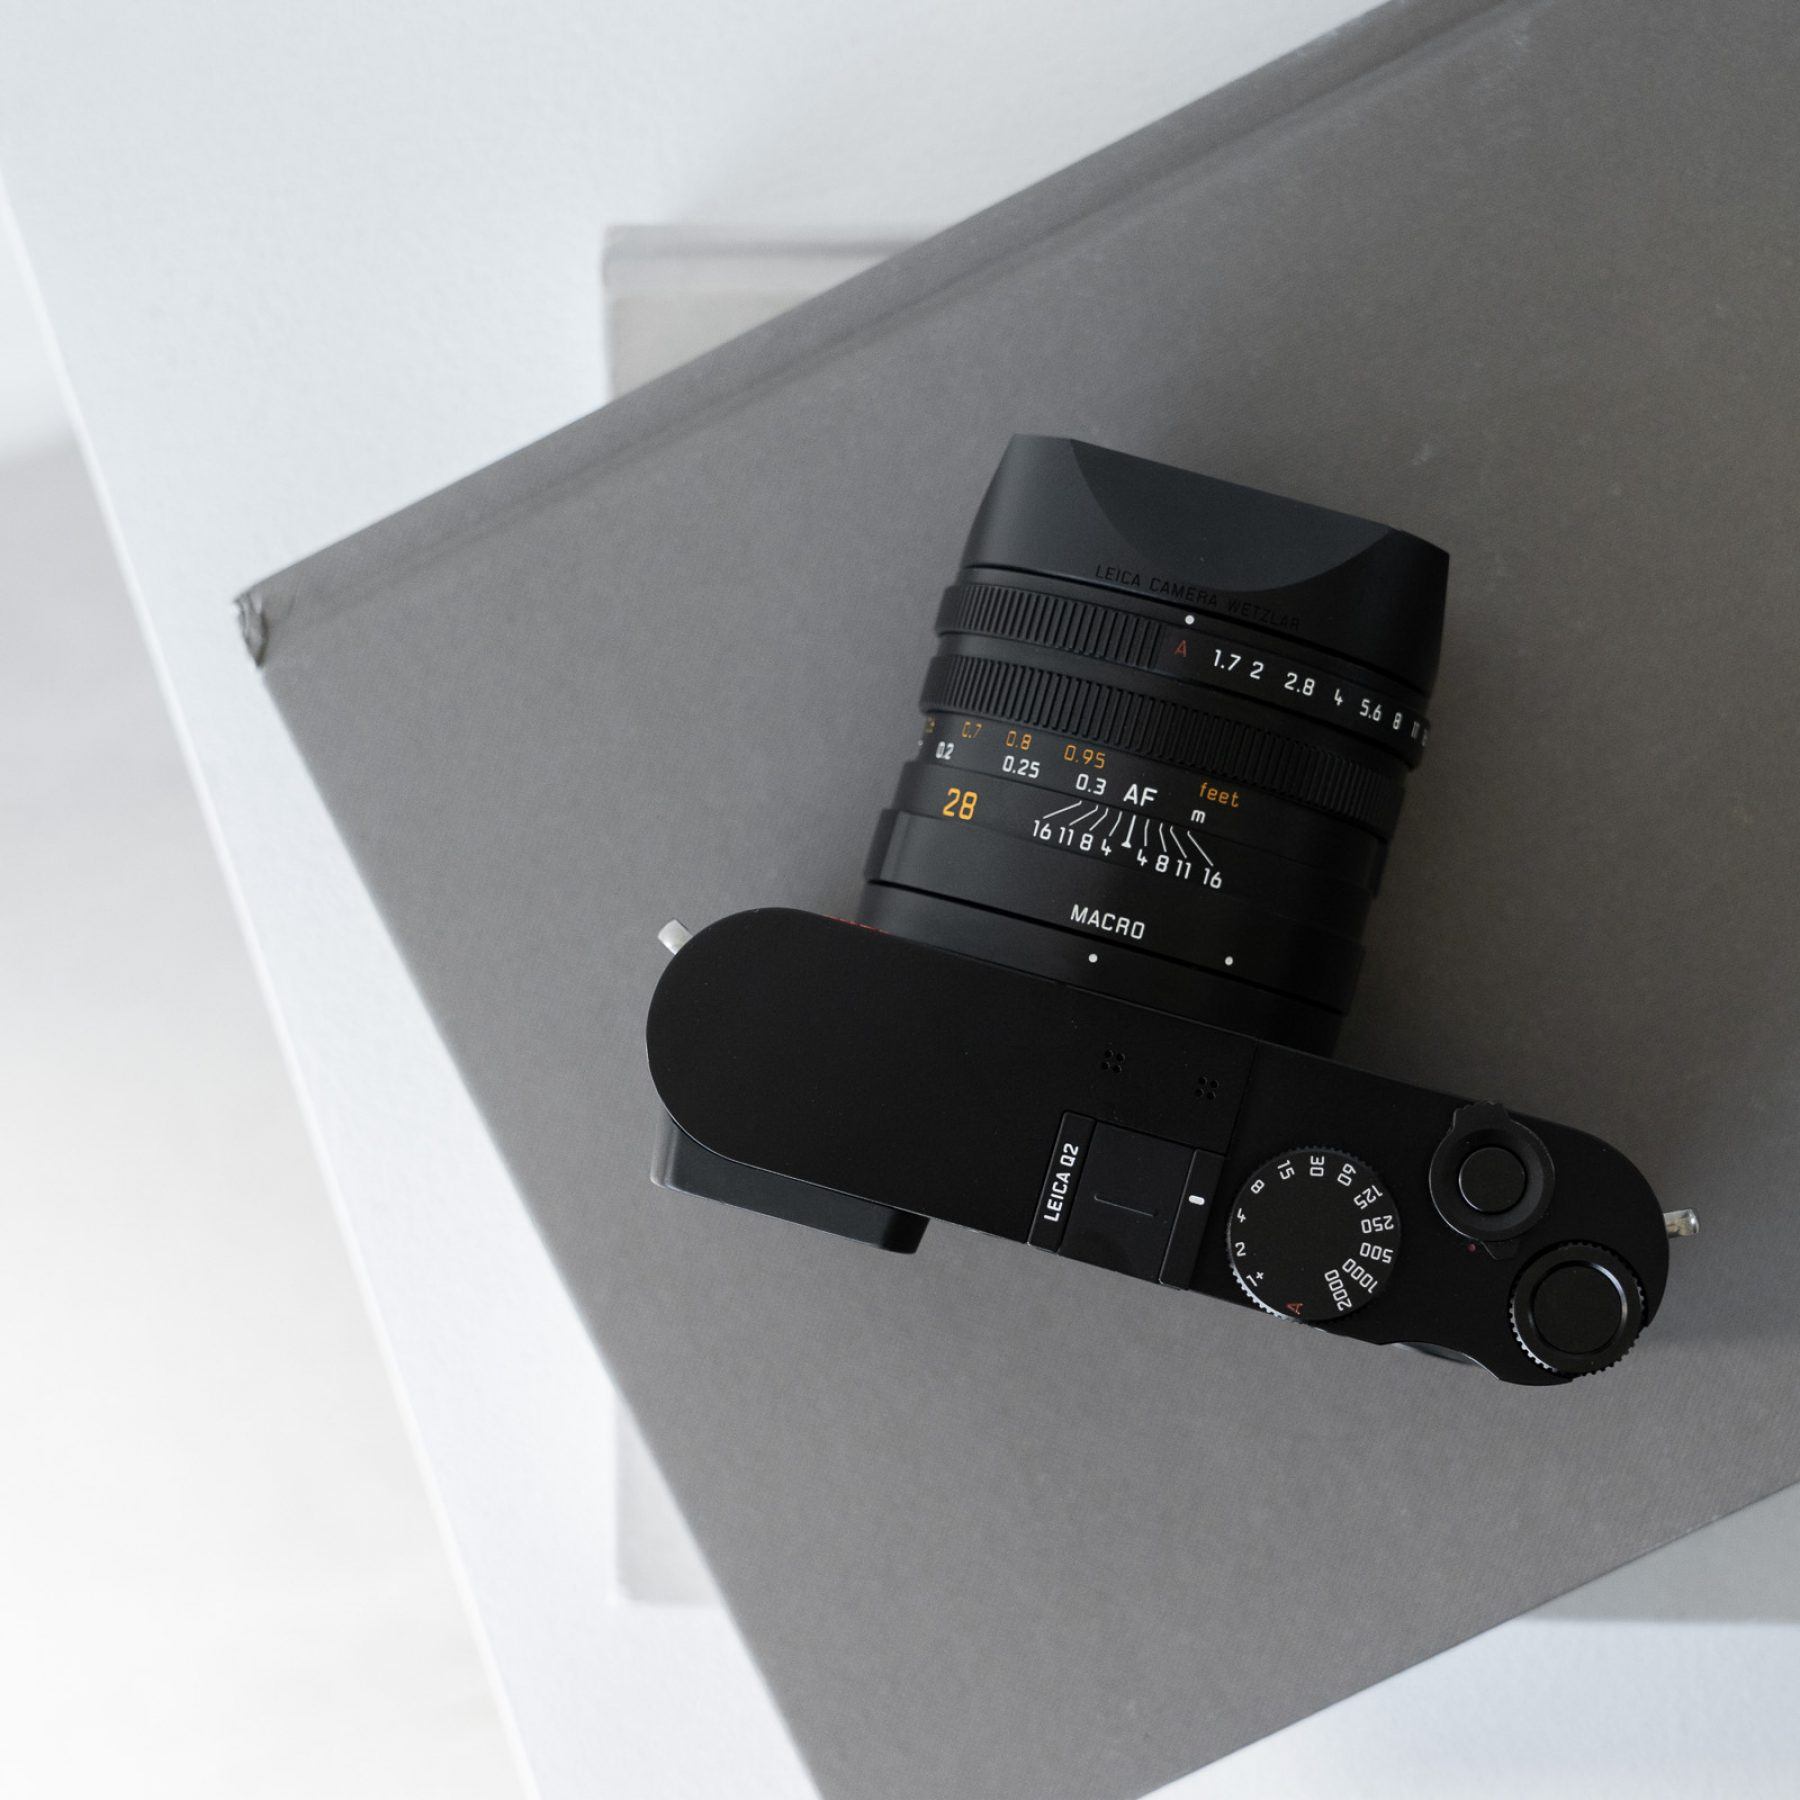 Leica-Q2-Review-HEY-GENTS-06-1